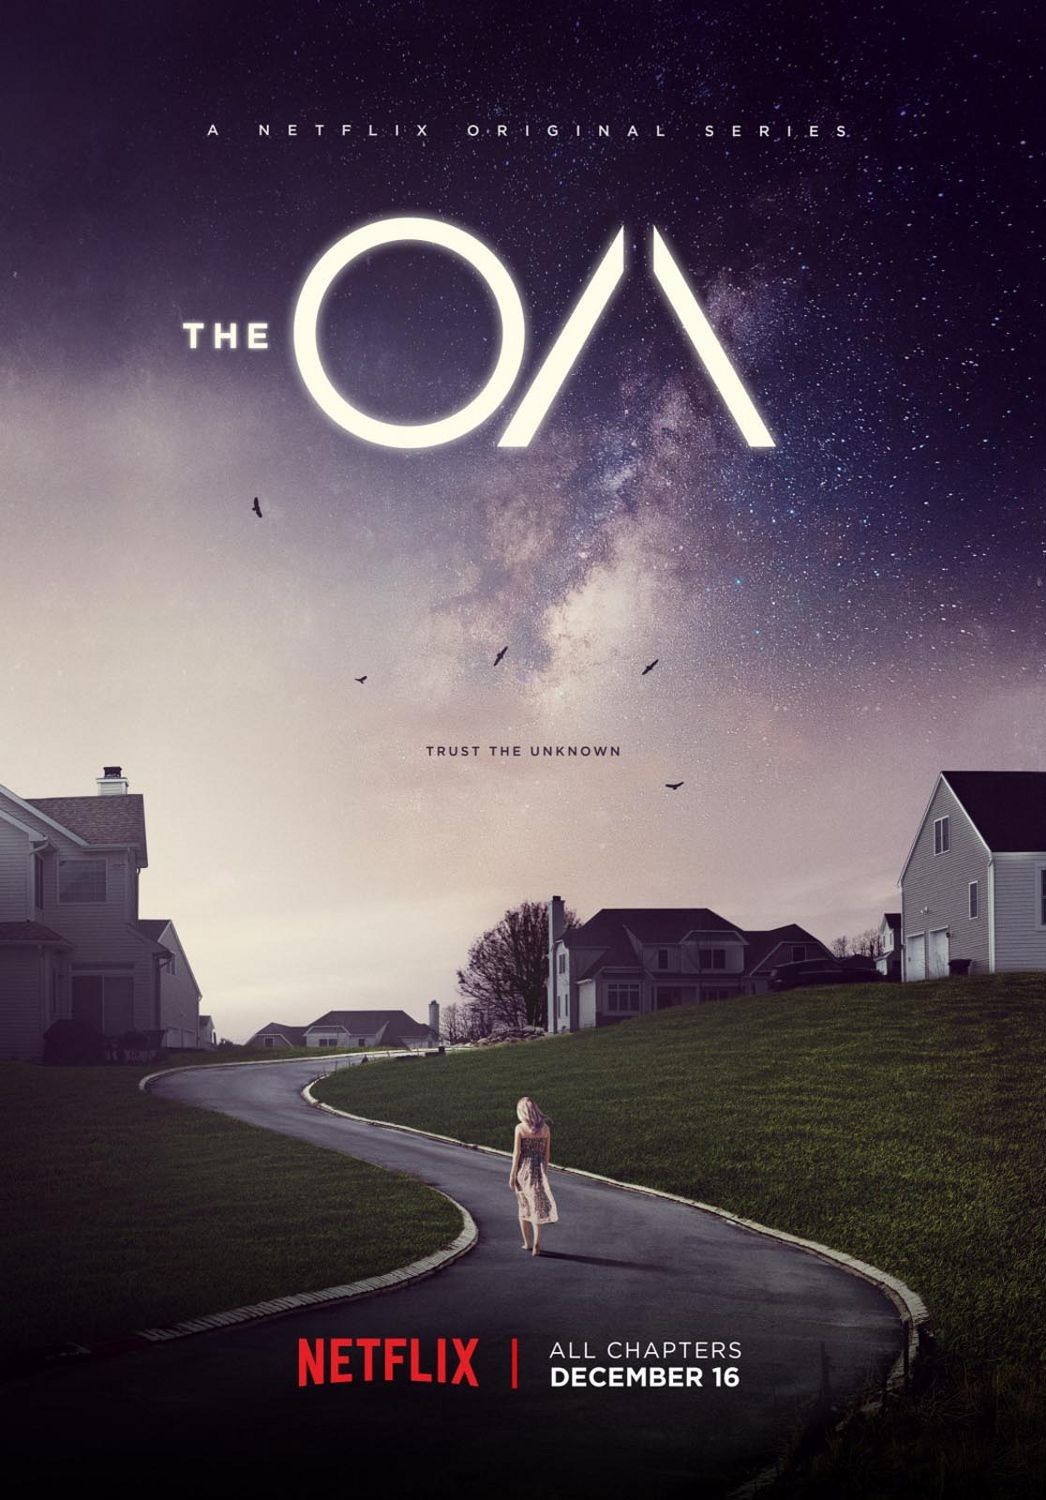 Pin By Luna On Watched List In 2020 The Oa Oa Netflix Netflix